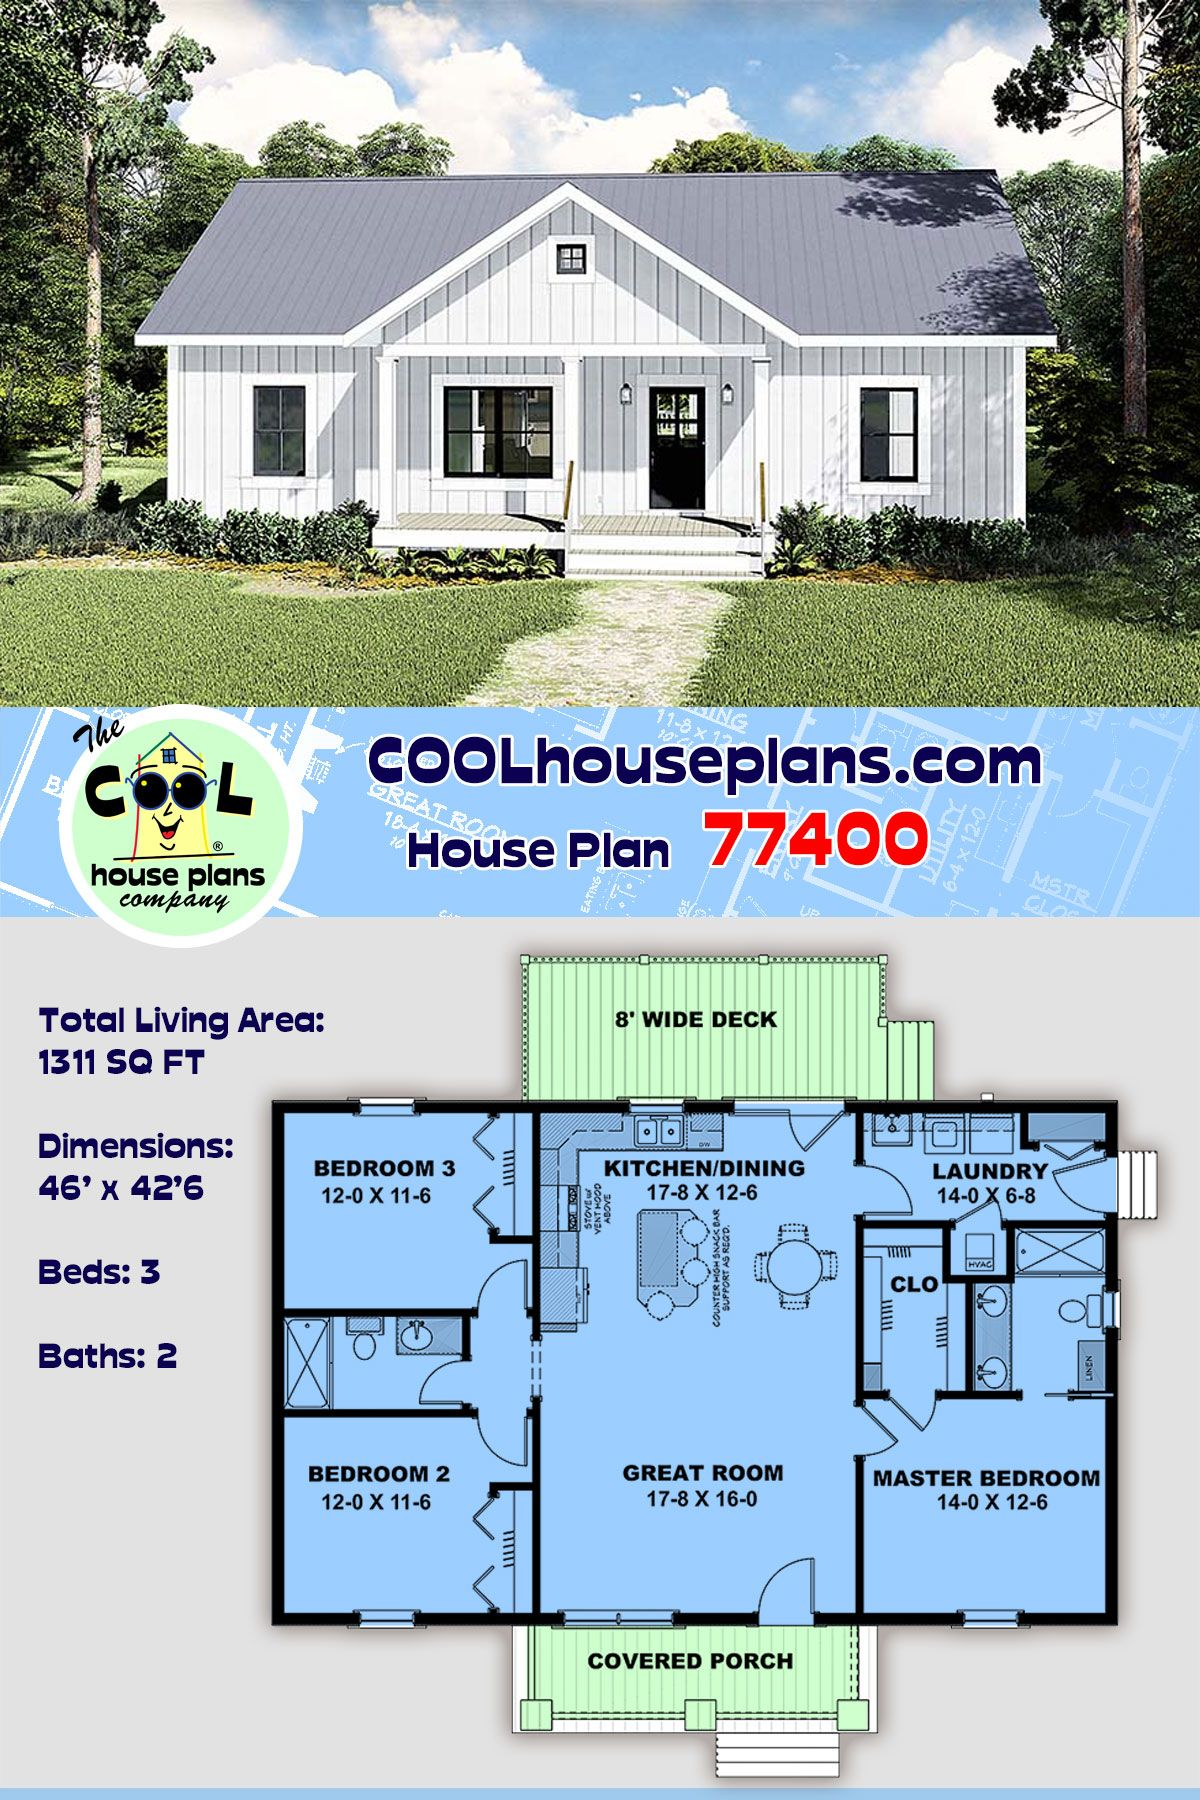 Country Style House Plan 77400 With 3 Bed 2 Bath In 2020 Ranch House Plans Country Style House Plans My House Plans